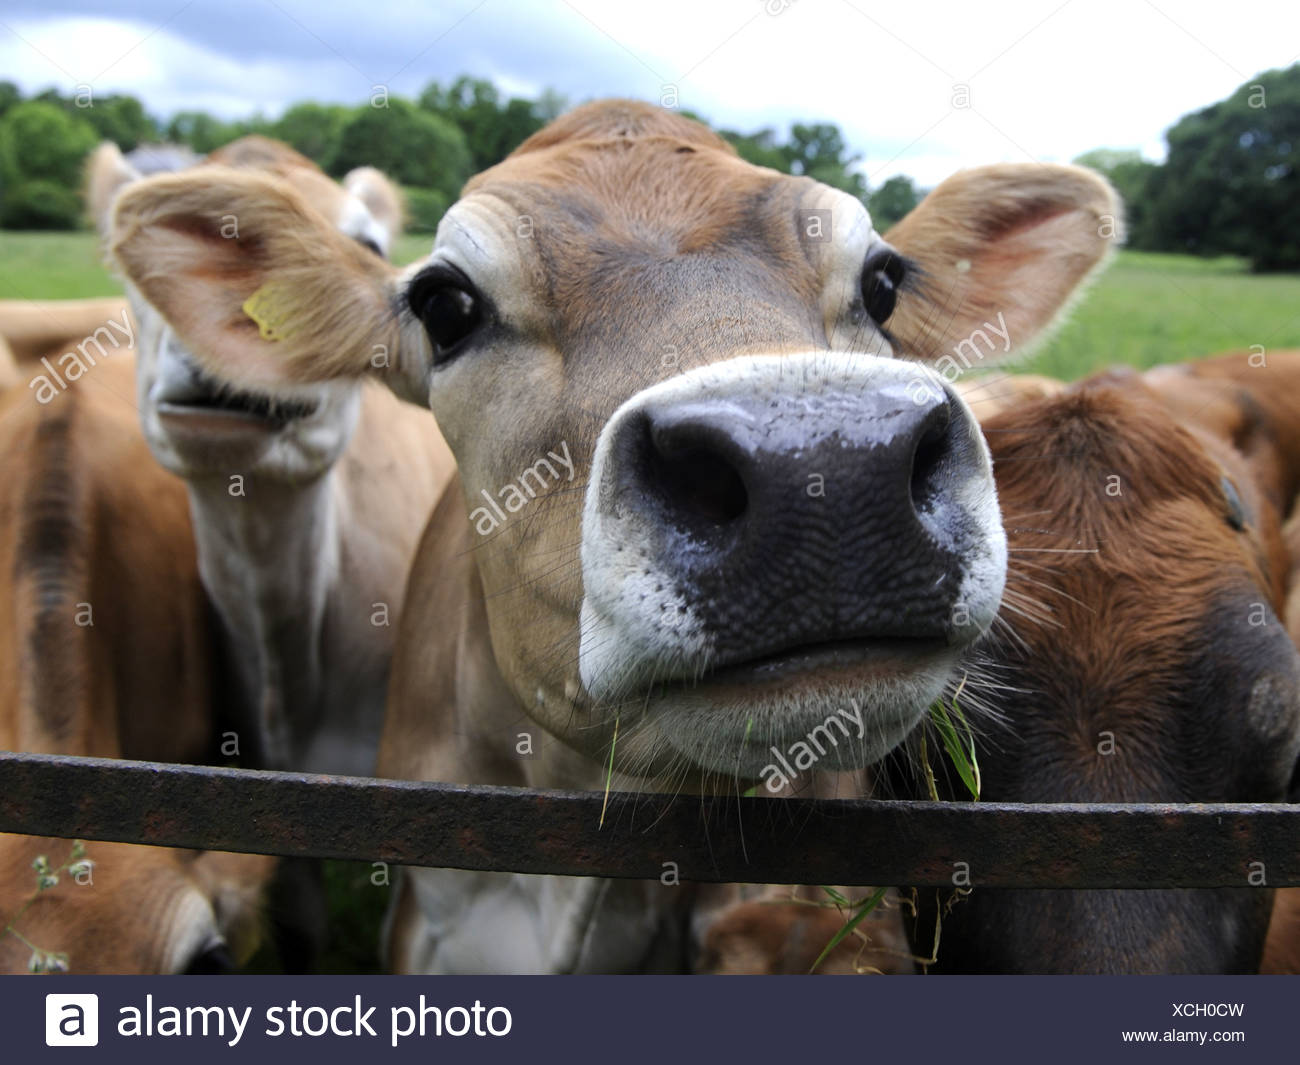 A group of jersey cows in a field - Stock Image